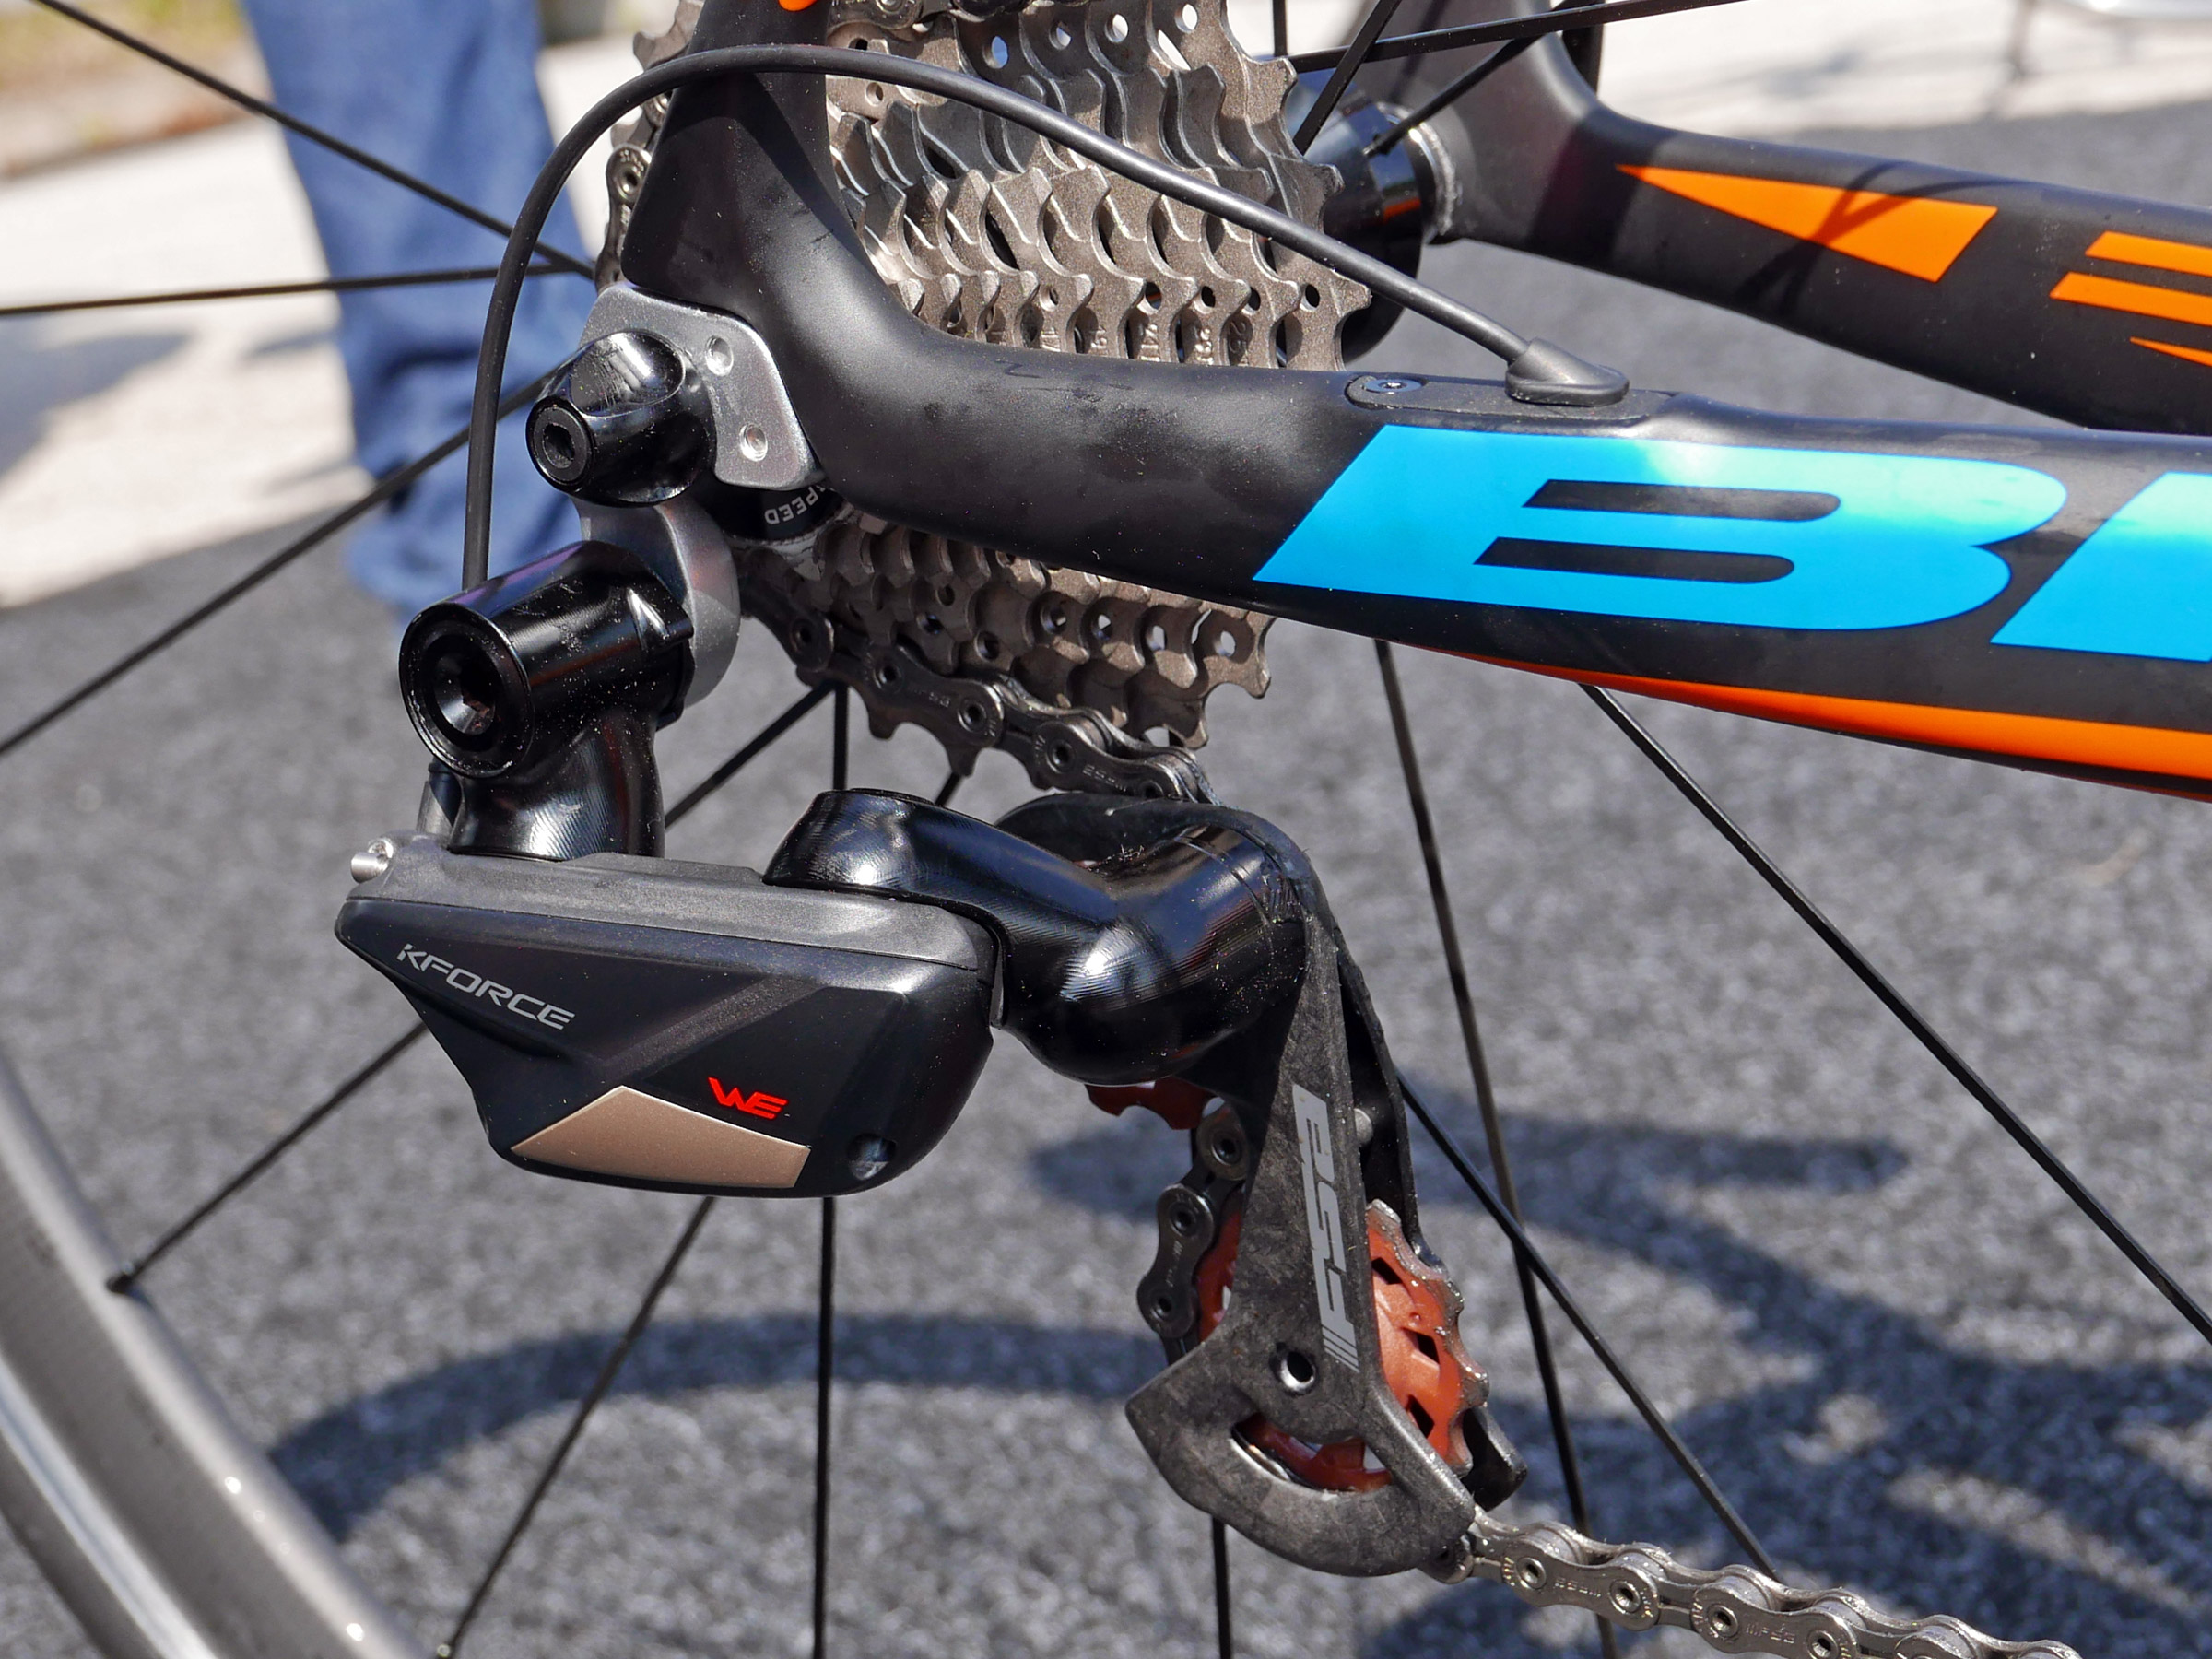 FSA_K-Force-WE_wireless-electronic-road-drivetrain-component-group_dual-pivot-brakes_rear-derailleur-detail